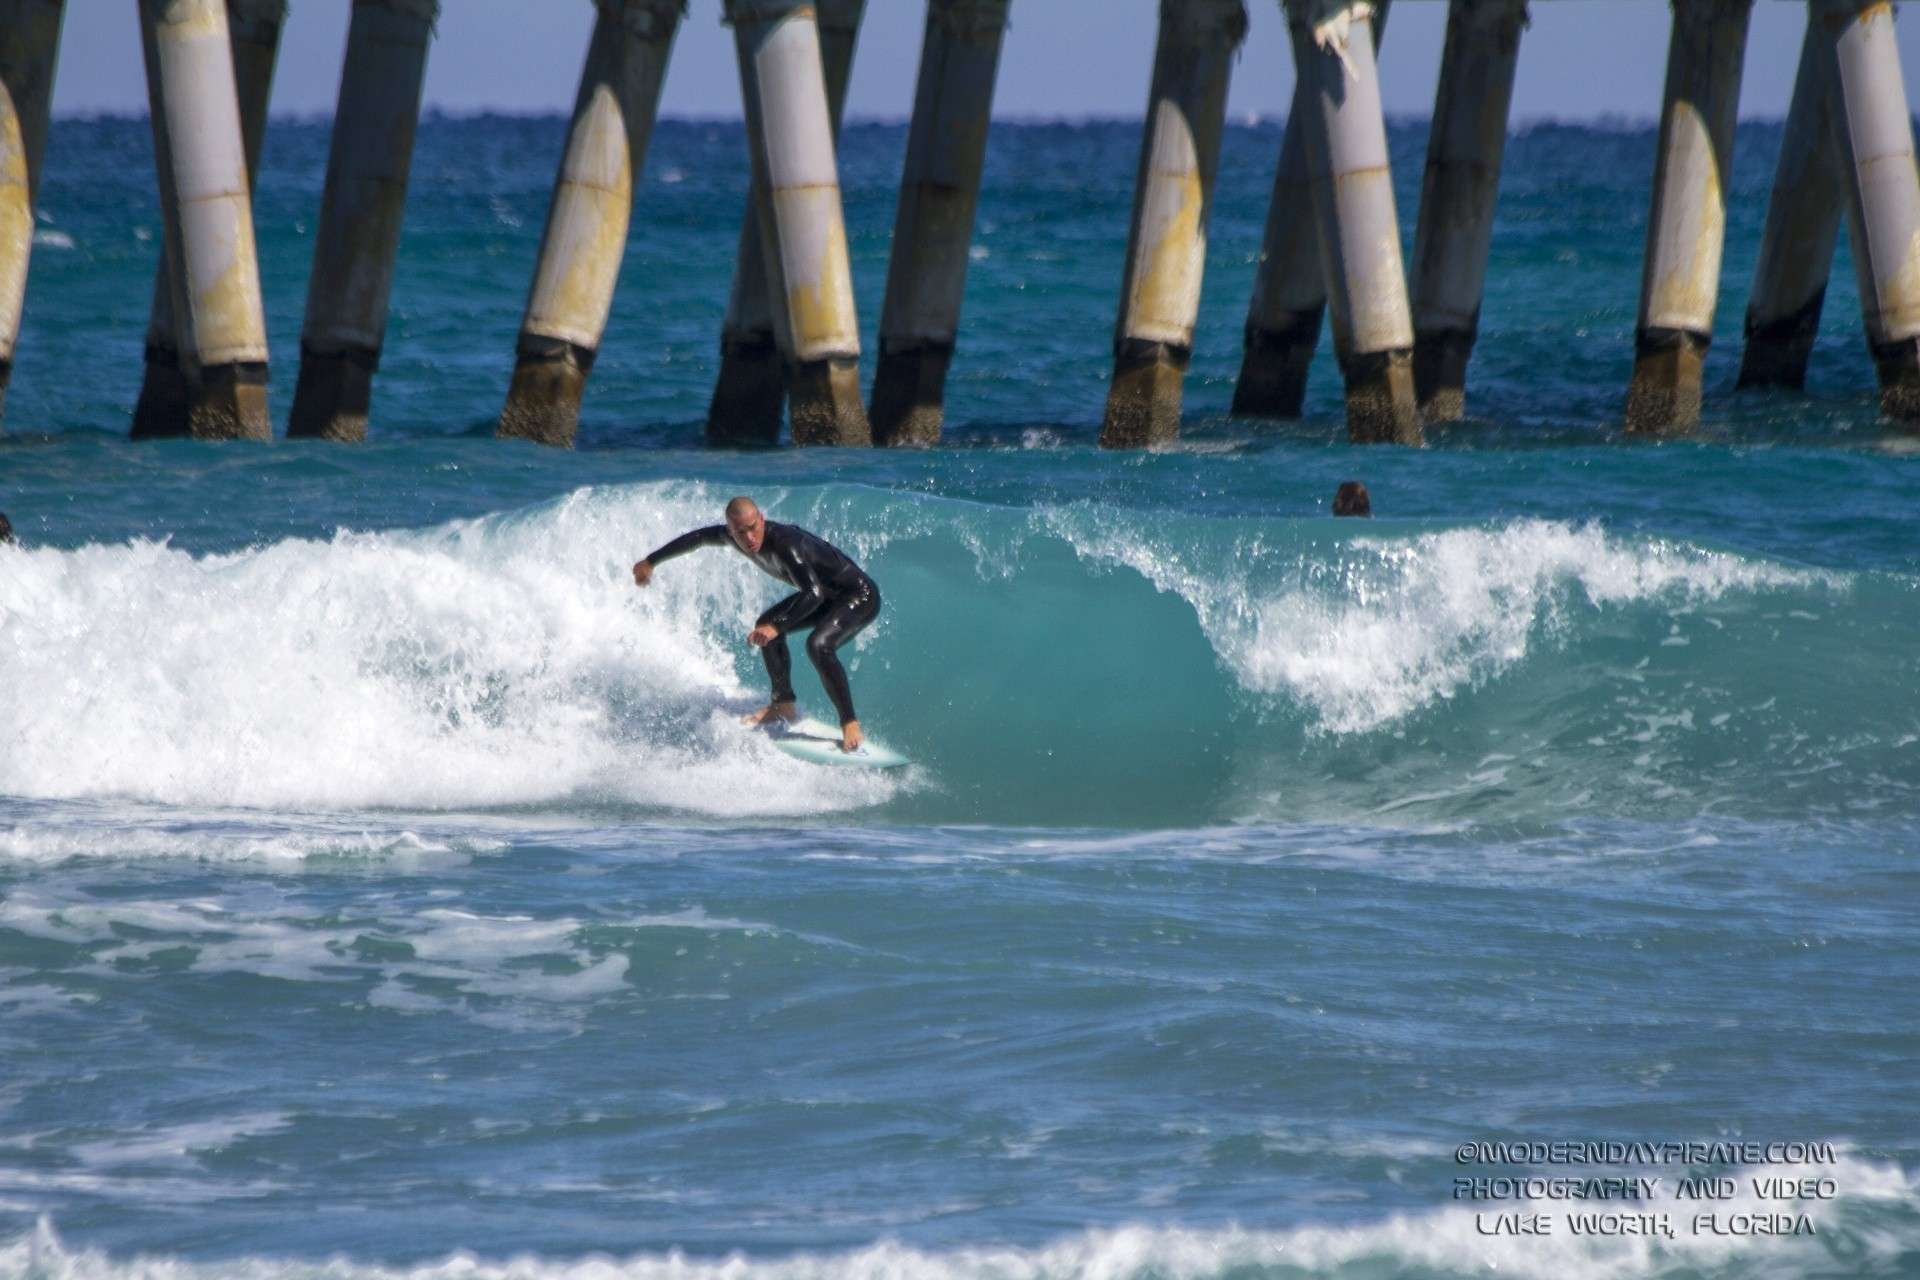 Joseph J Jackson Jr.'s photo of Lake Worth Pier